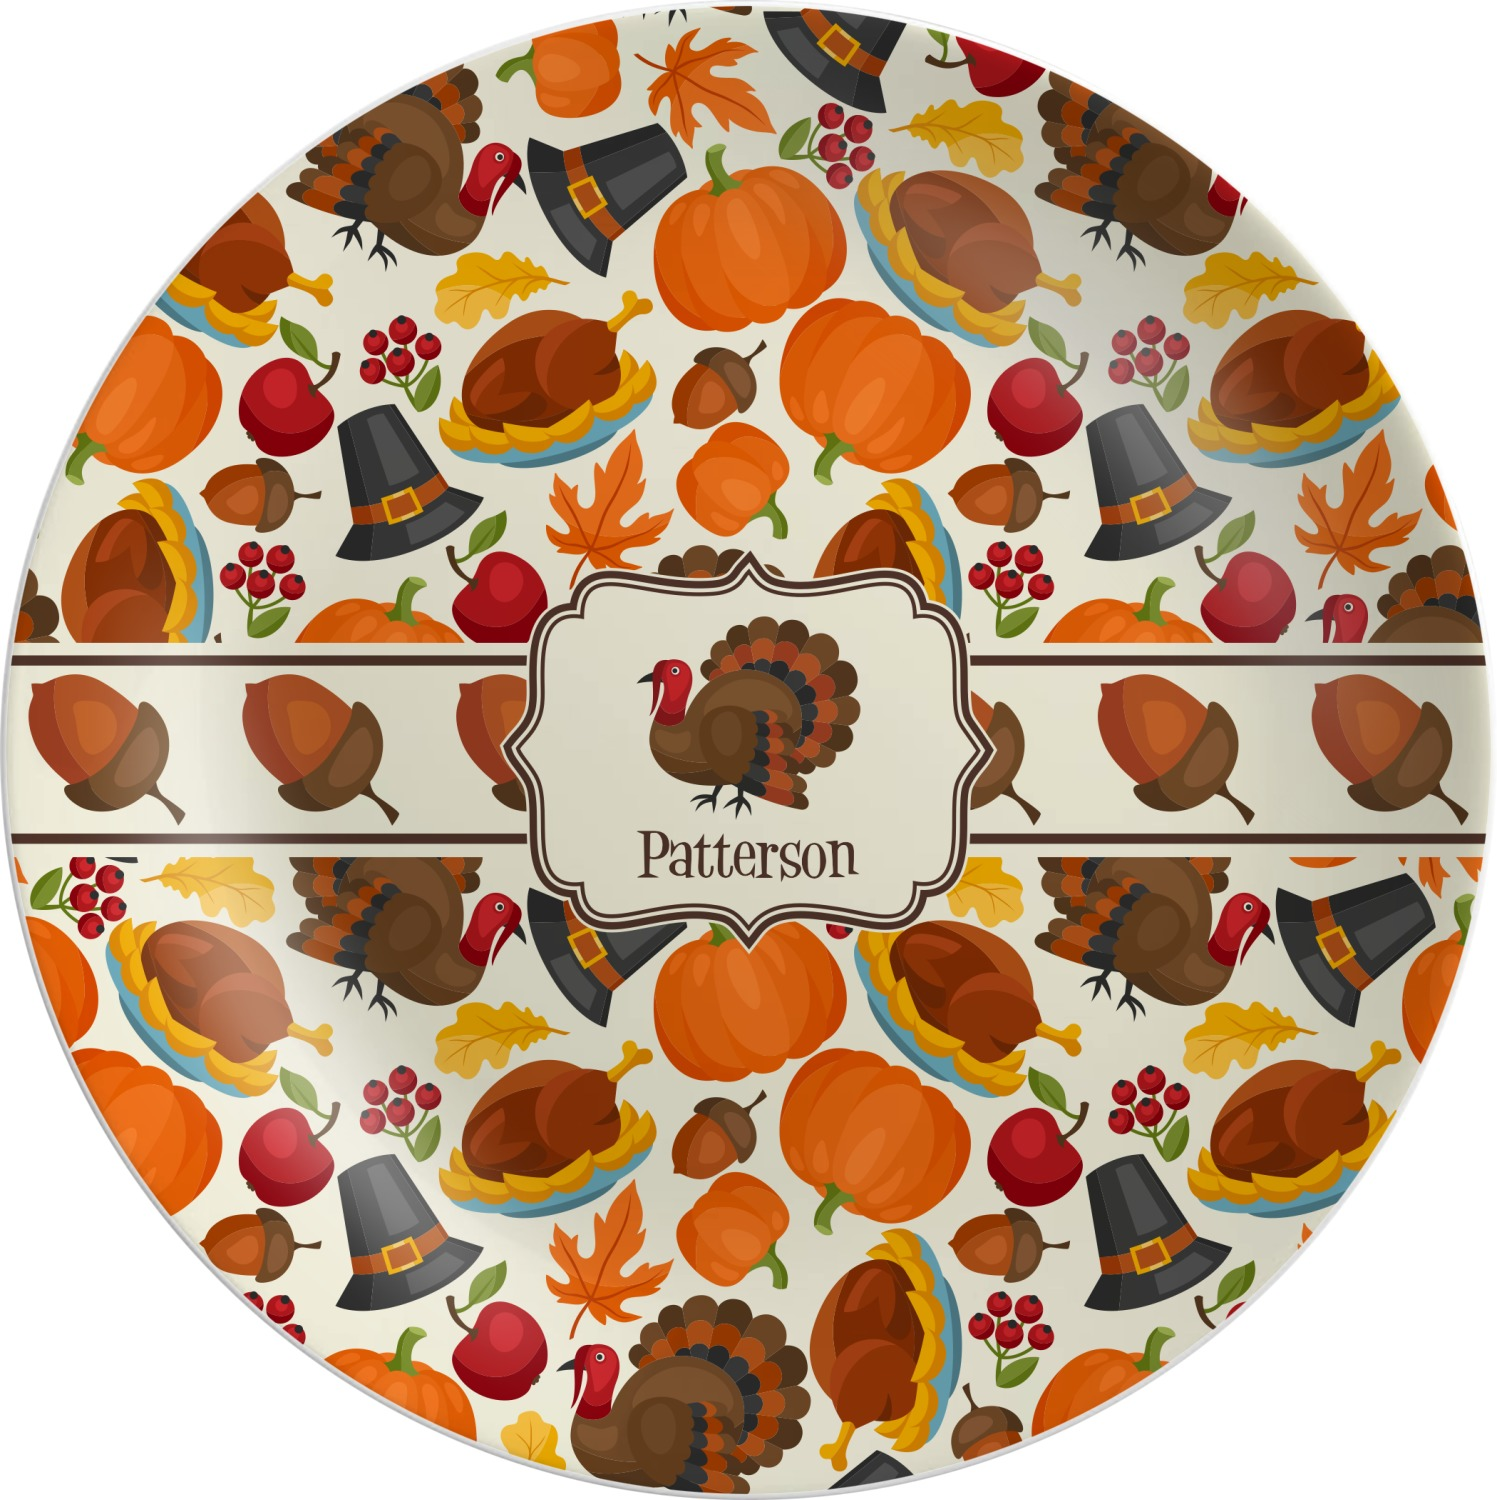 Traditional Thanksgiving Melamine Plate (Personalized)  sc 1 st  YouCustomizeIt : melamine personalized plates - pezcame.com